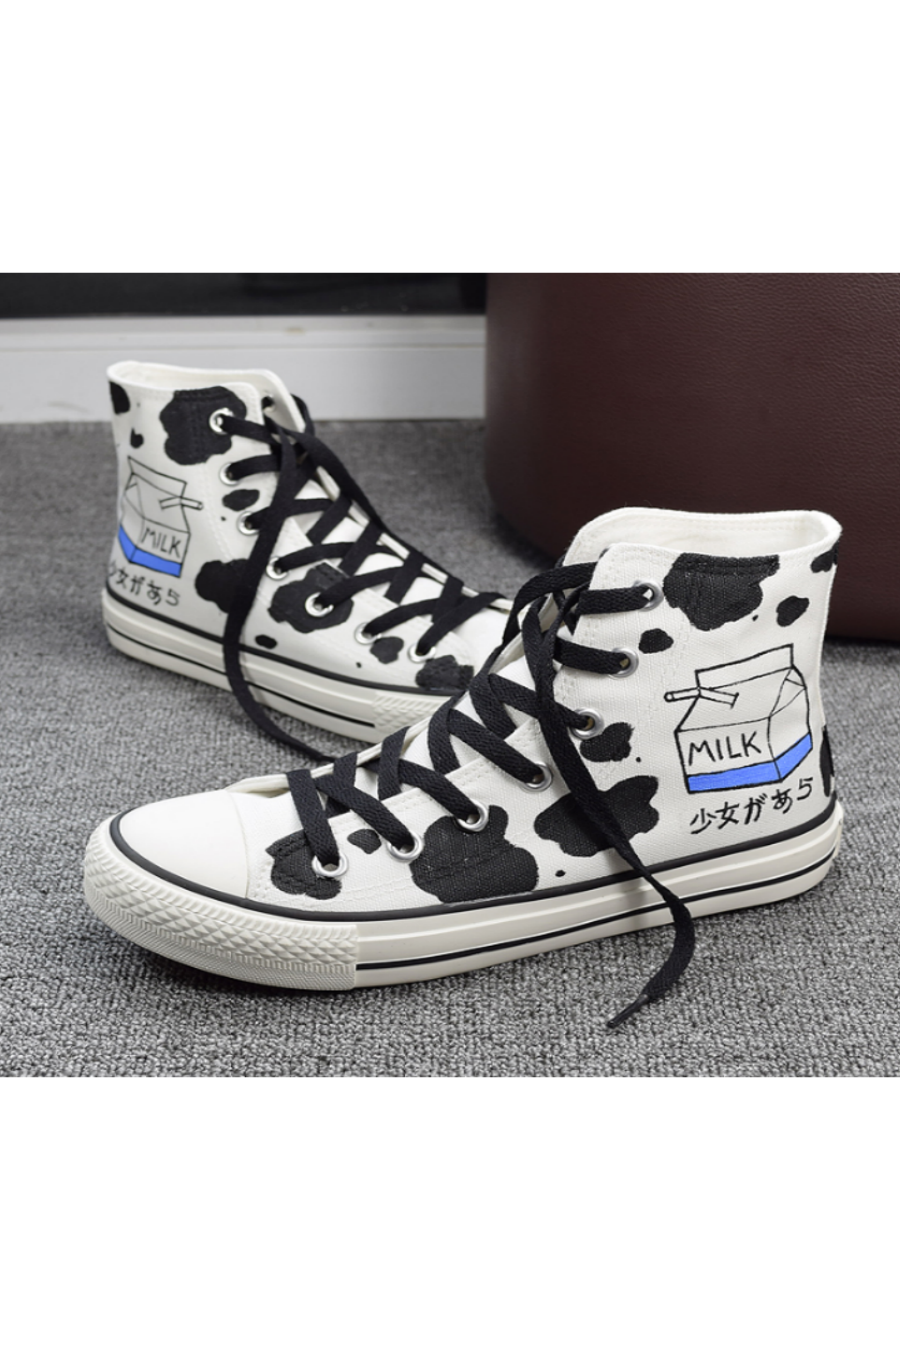 Milk Box Hand Painted Sneakers